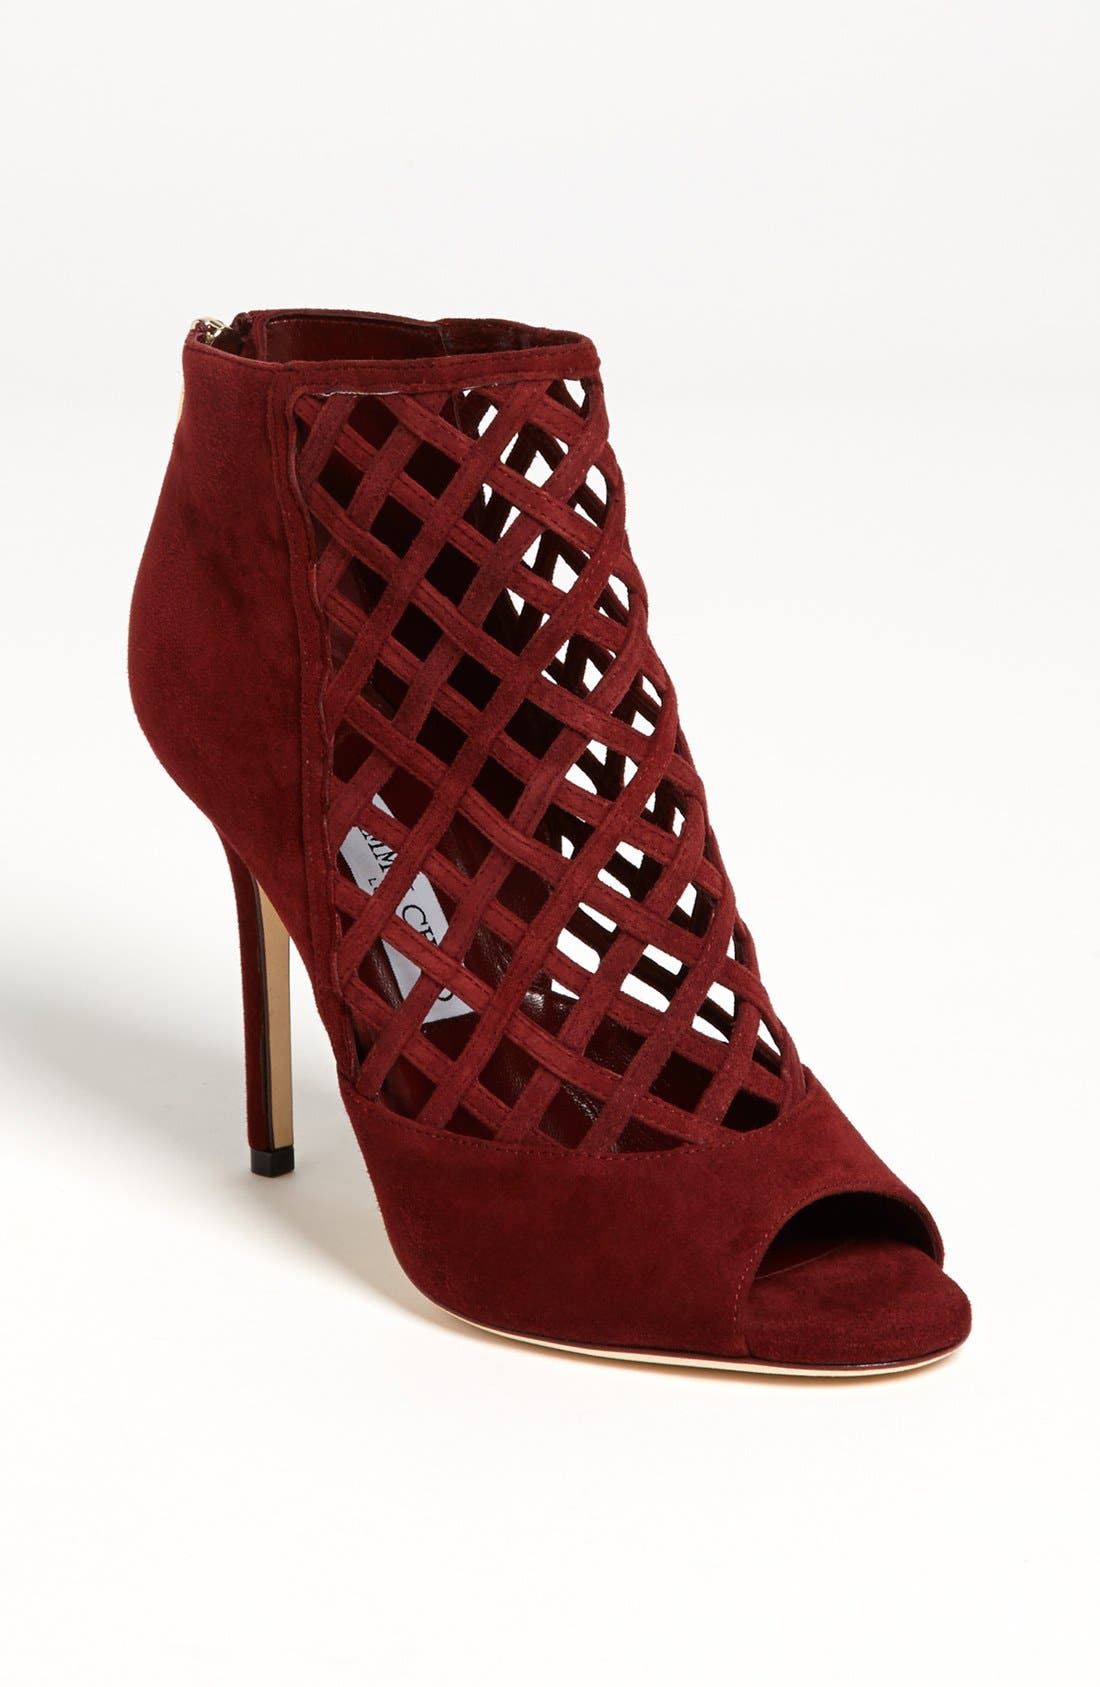 Main Image - Jimmy Choo 'Drift' Bootie